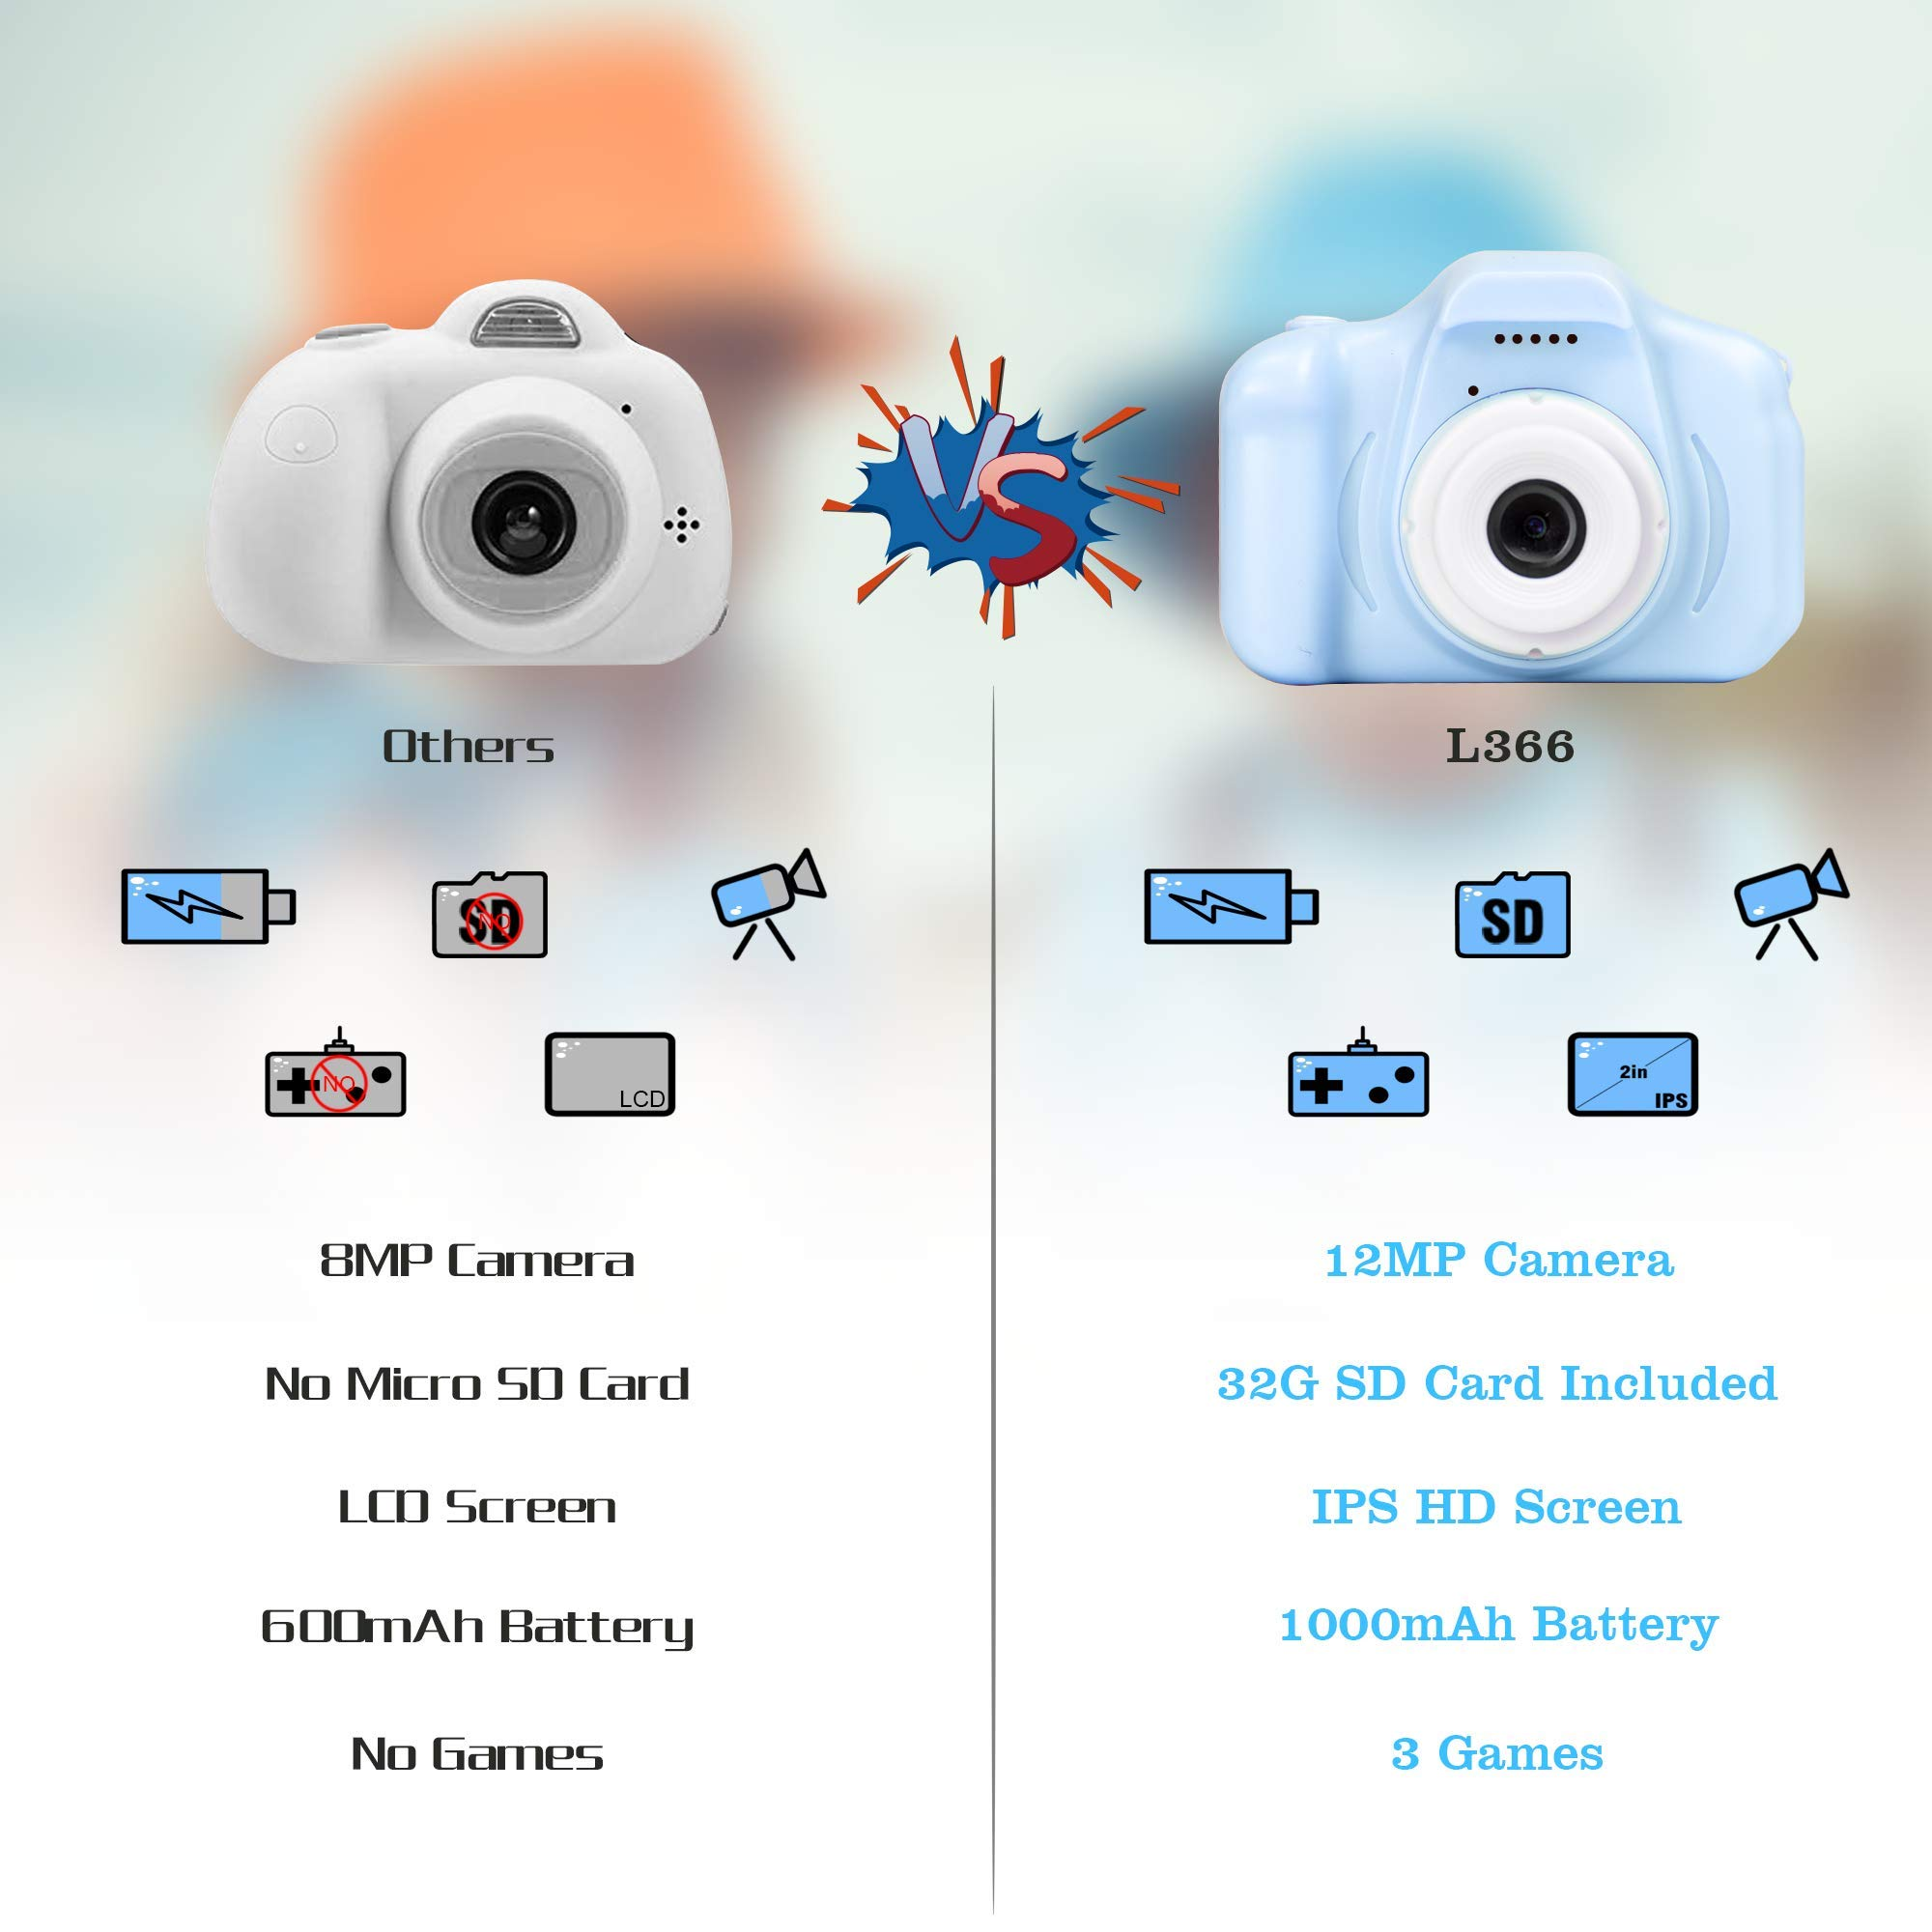 le-idea Kids Camera 1080P Dual 12MP Mini 2.0 inch IPS Display Shockproof Child Digital Selfie HD Camera Camcorder Gifts for 3-10 Year Old Girls & Boys Outdoor Play, Blue (32GB Memory Card Included) by le-idea (Image #8)